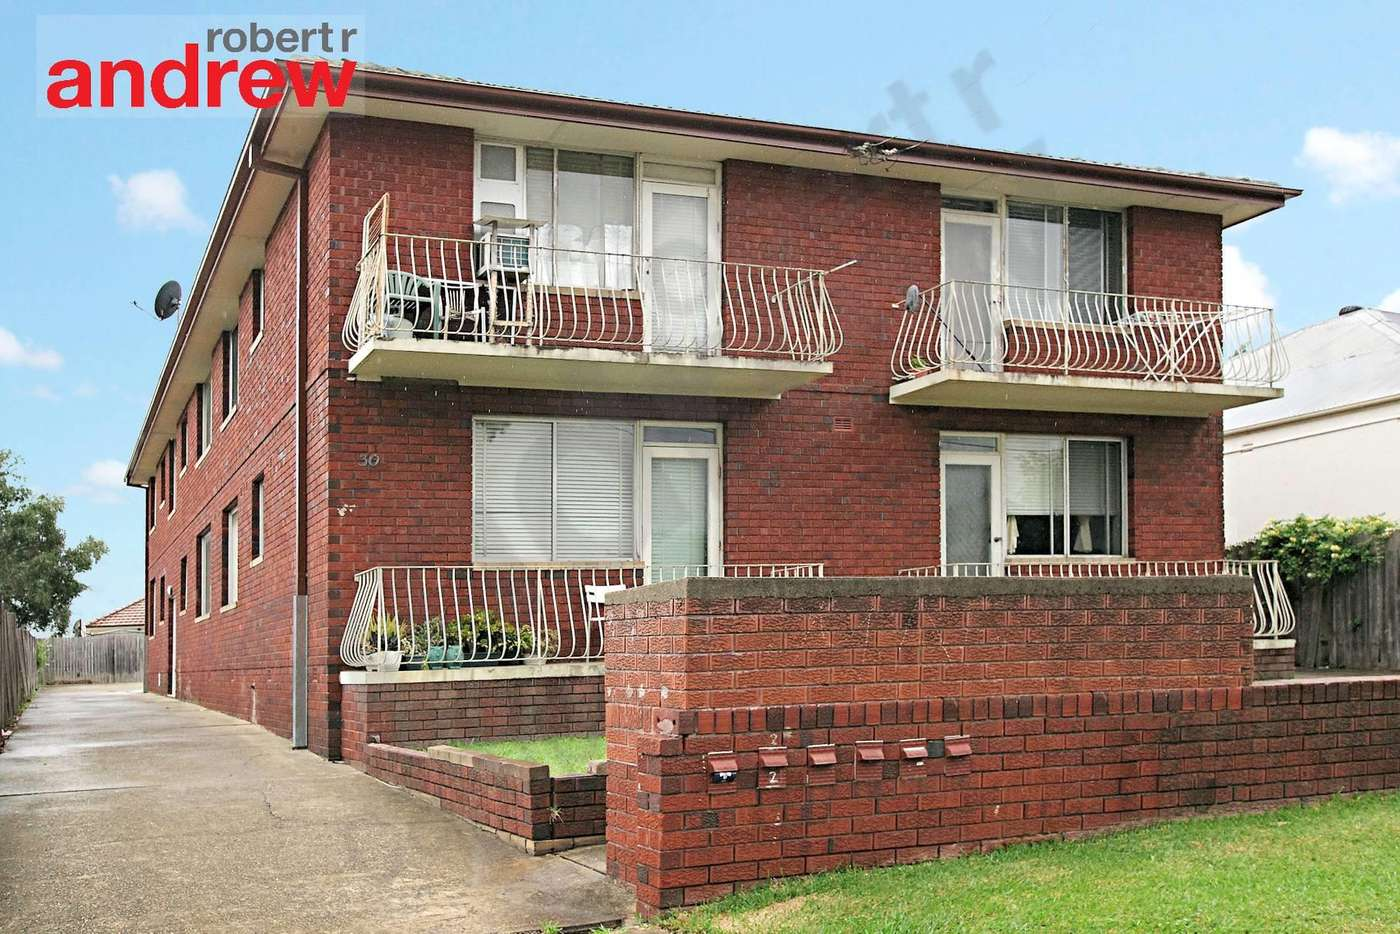 Main view of Homely blockOfUnits listing, 1-6/30 Marlowe Street, Campsie NSW 2194